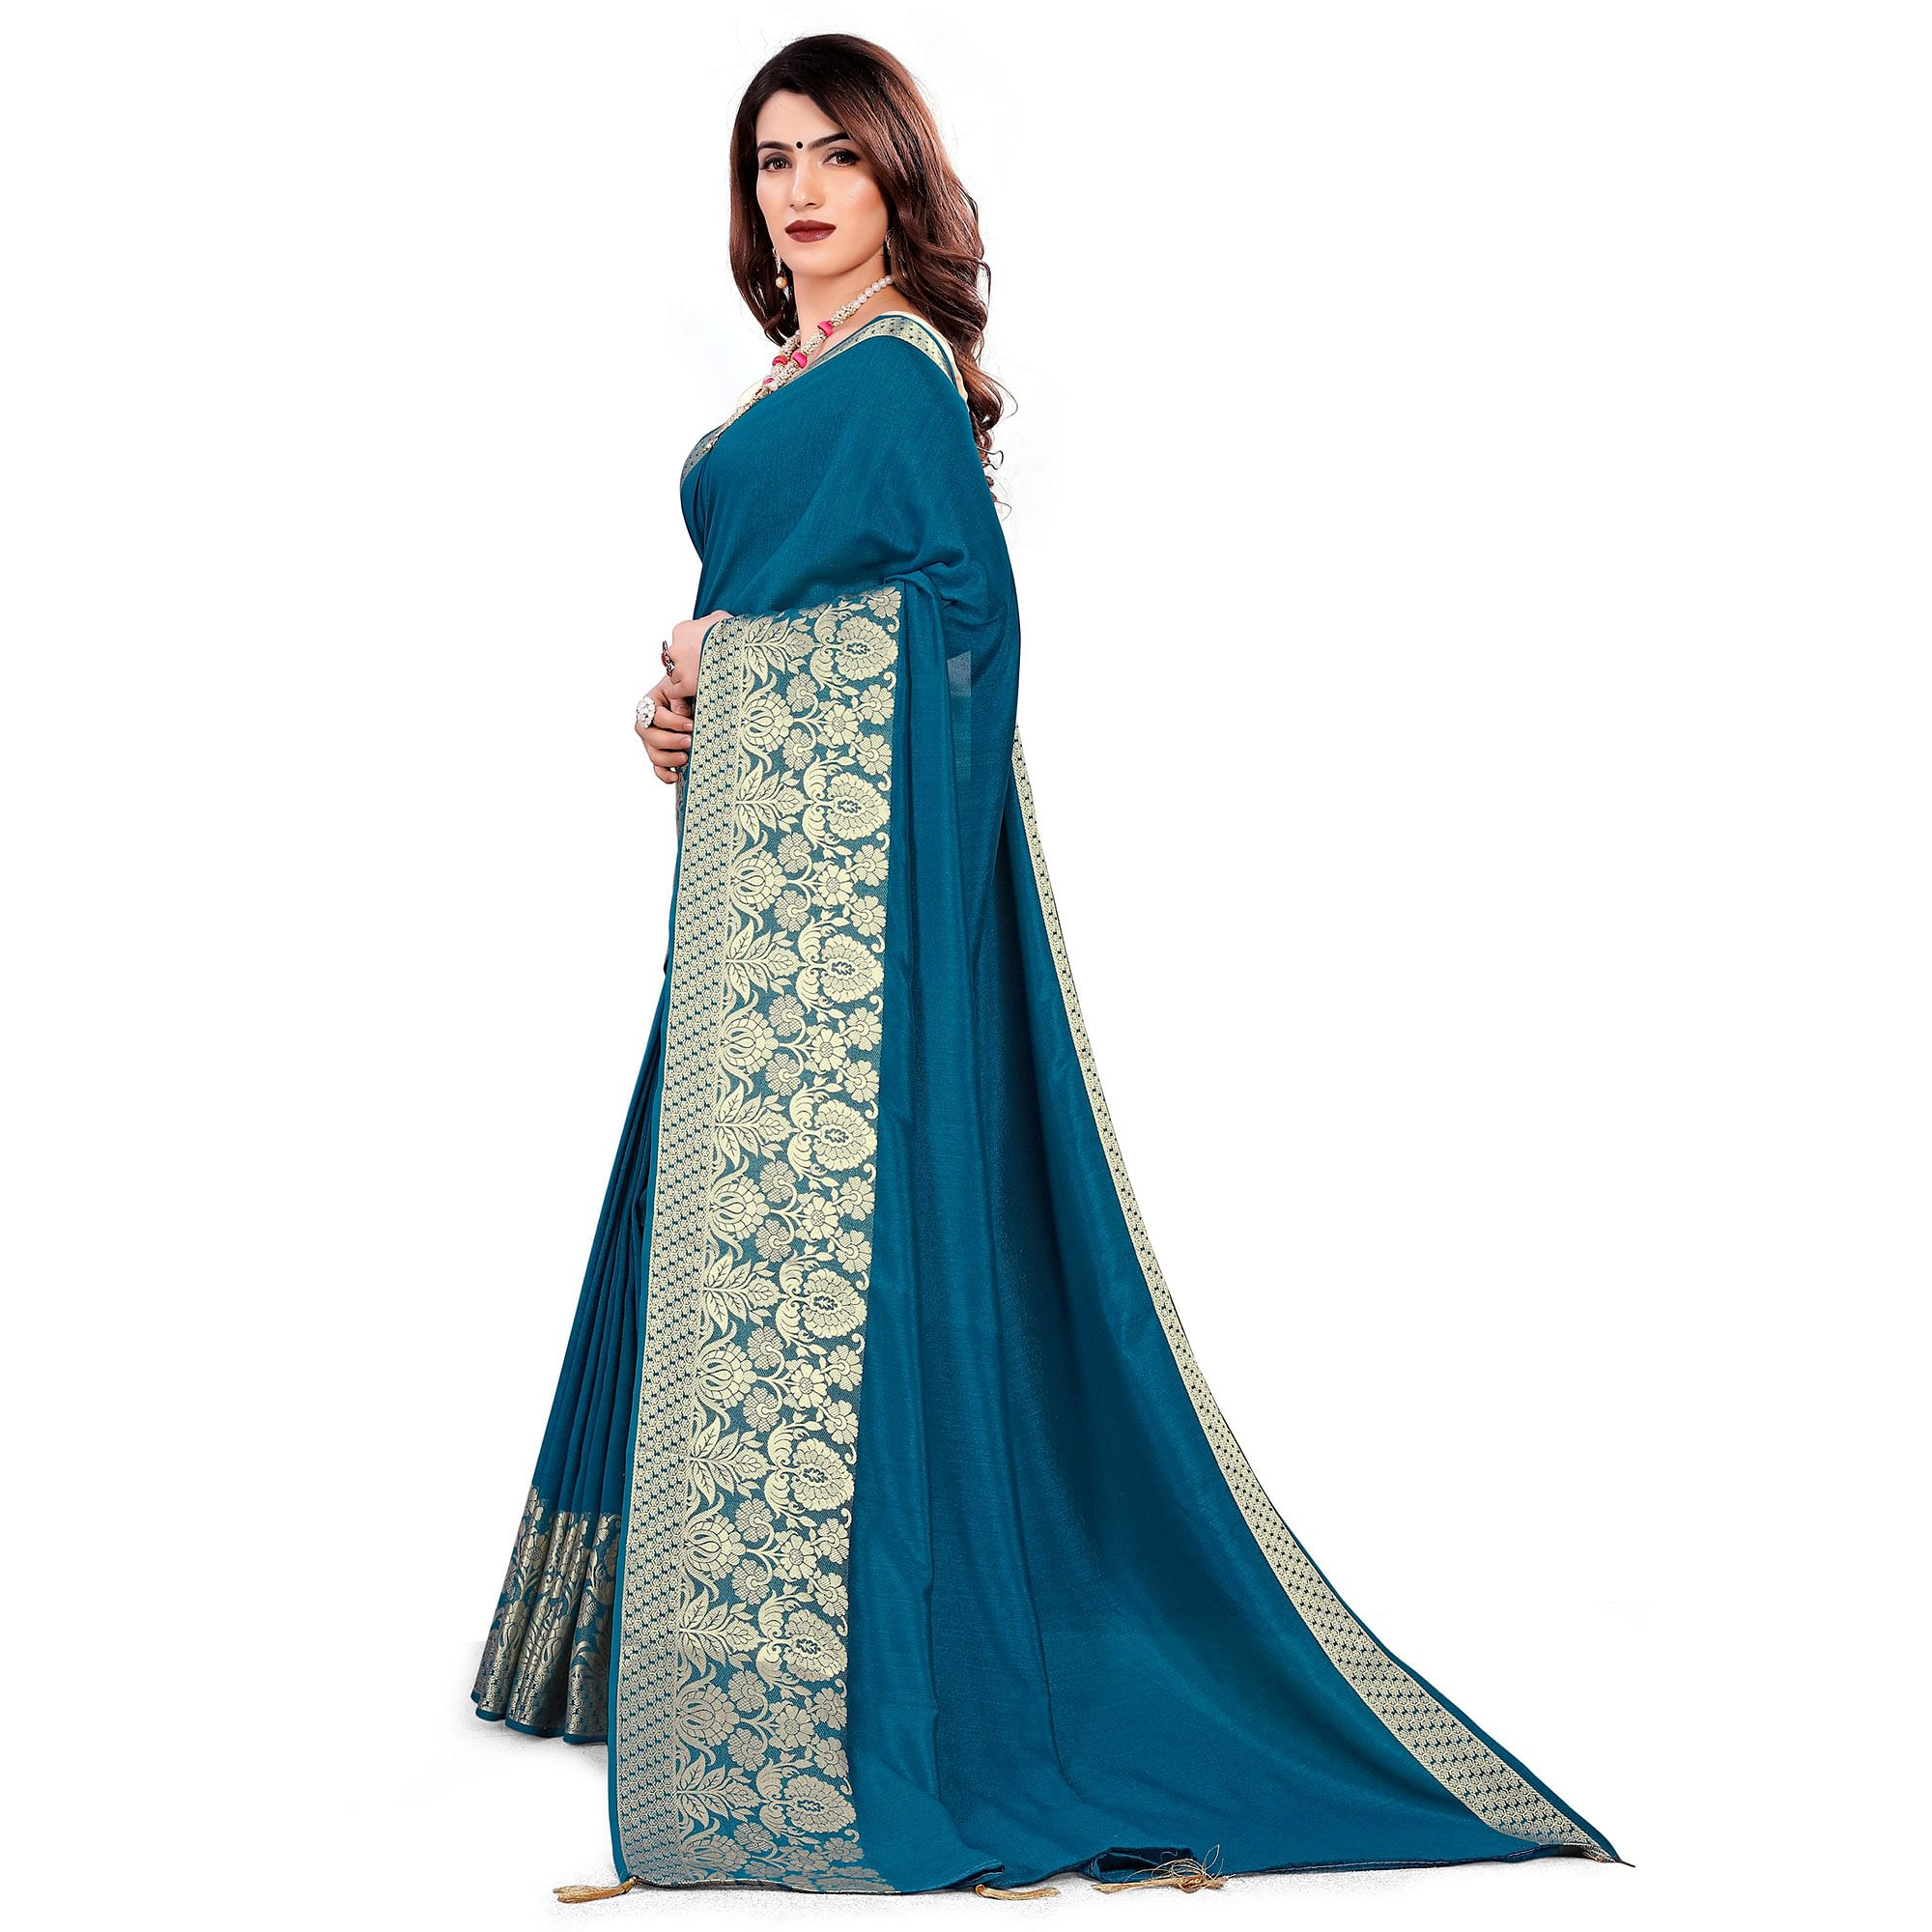 Classy Teal Blue Colored Festive Wear Woven Art Silk Saree With Tassels